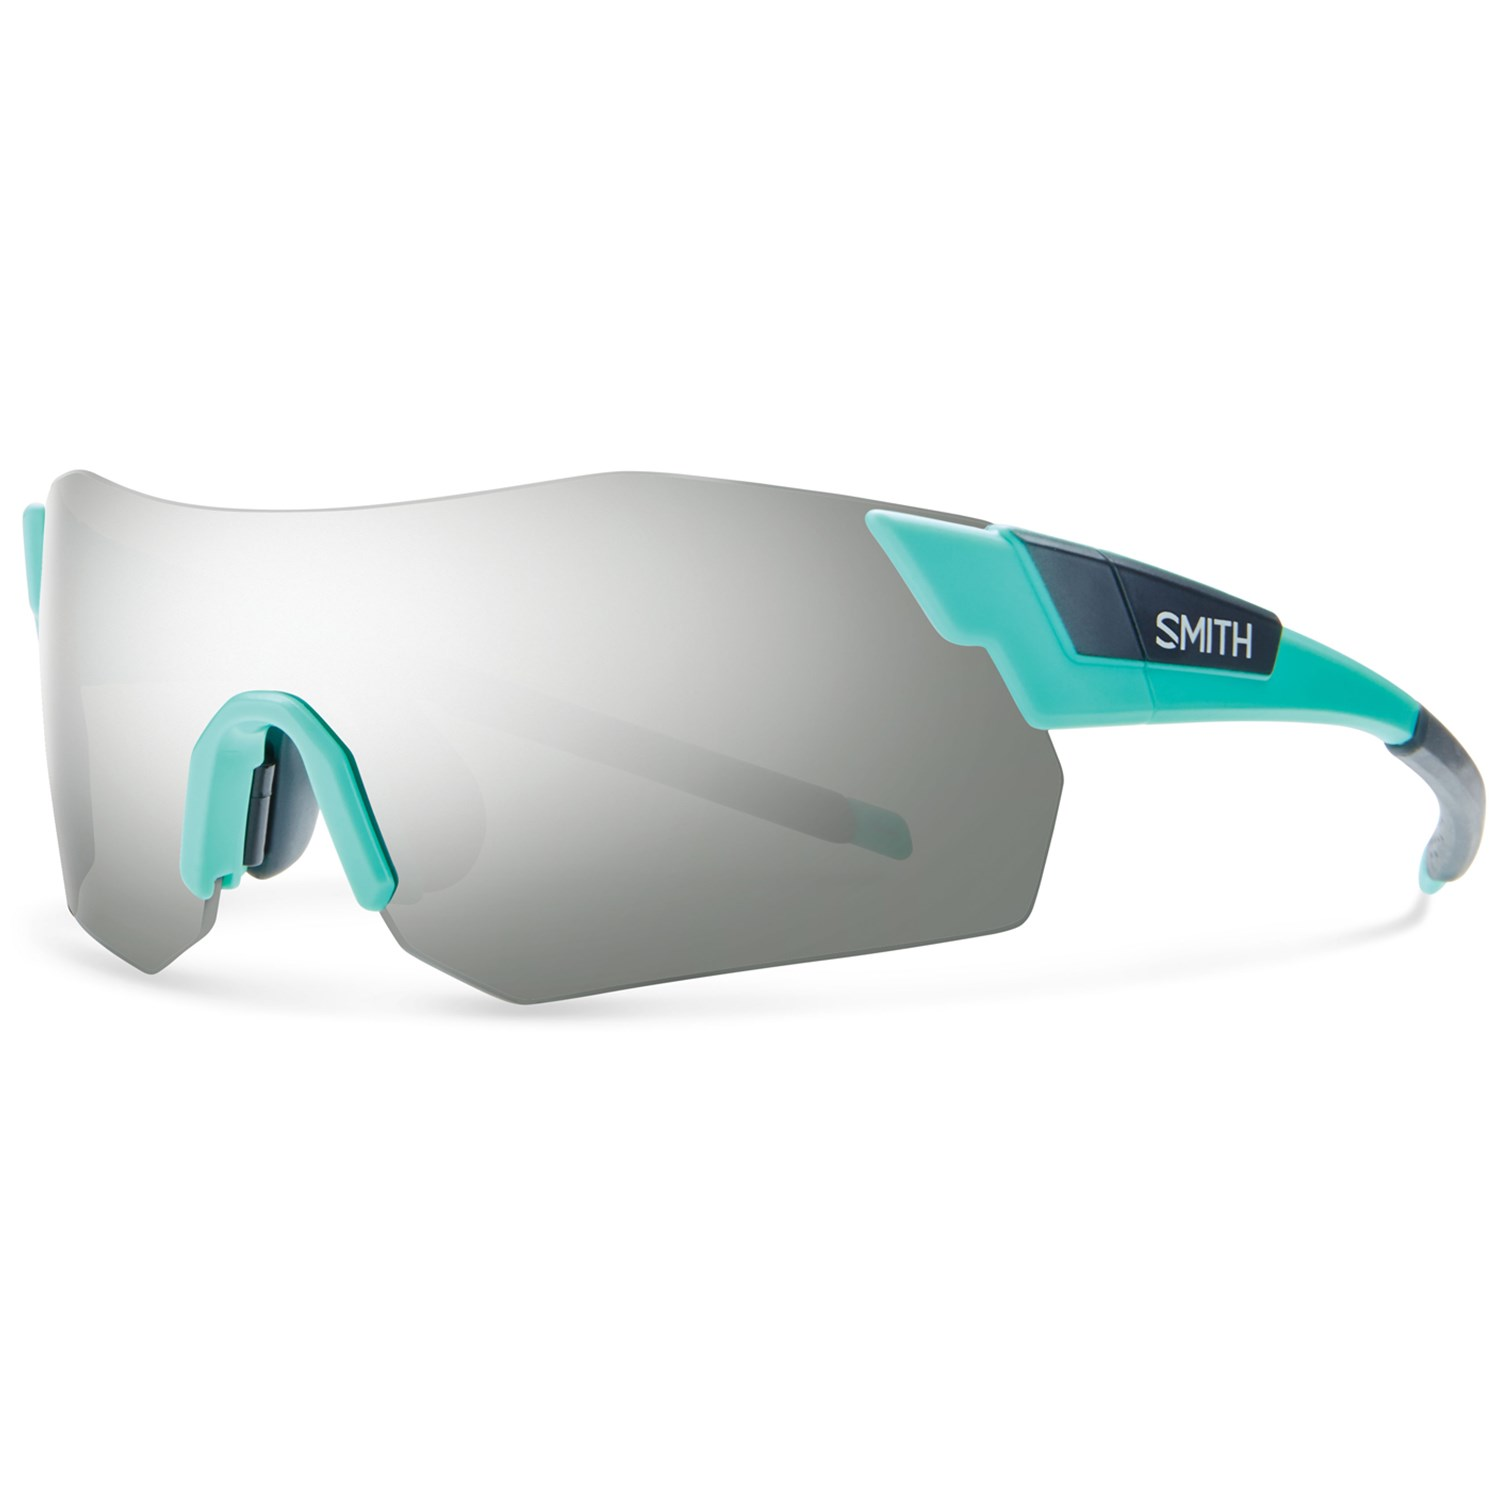 fe8e1b2d426 Smith Evolve Sunglasses Prices